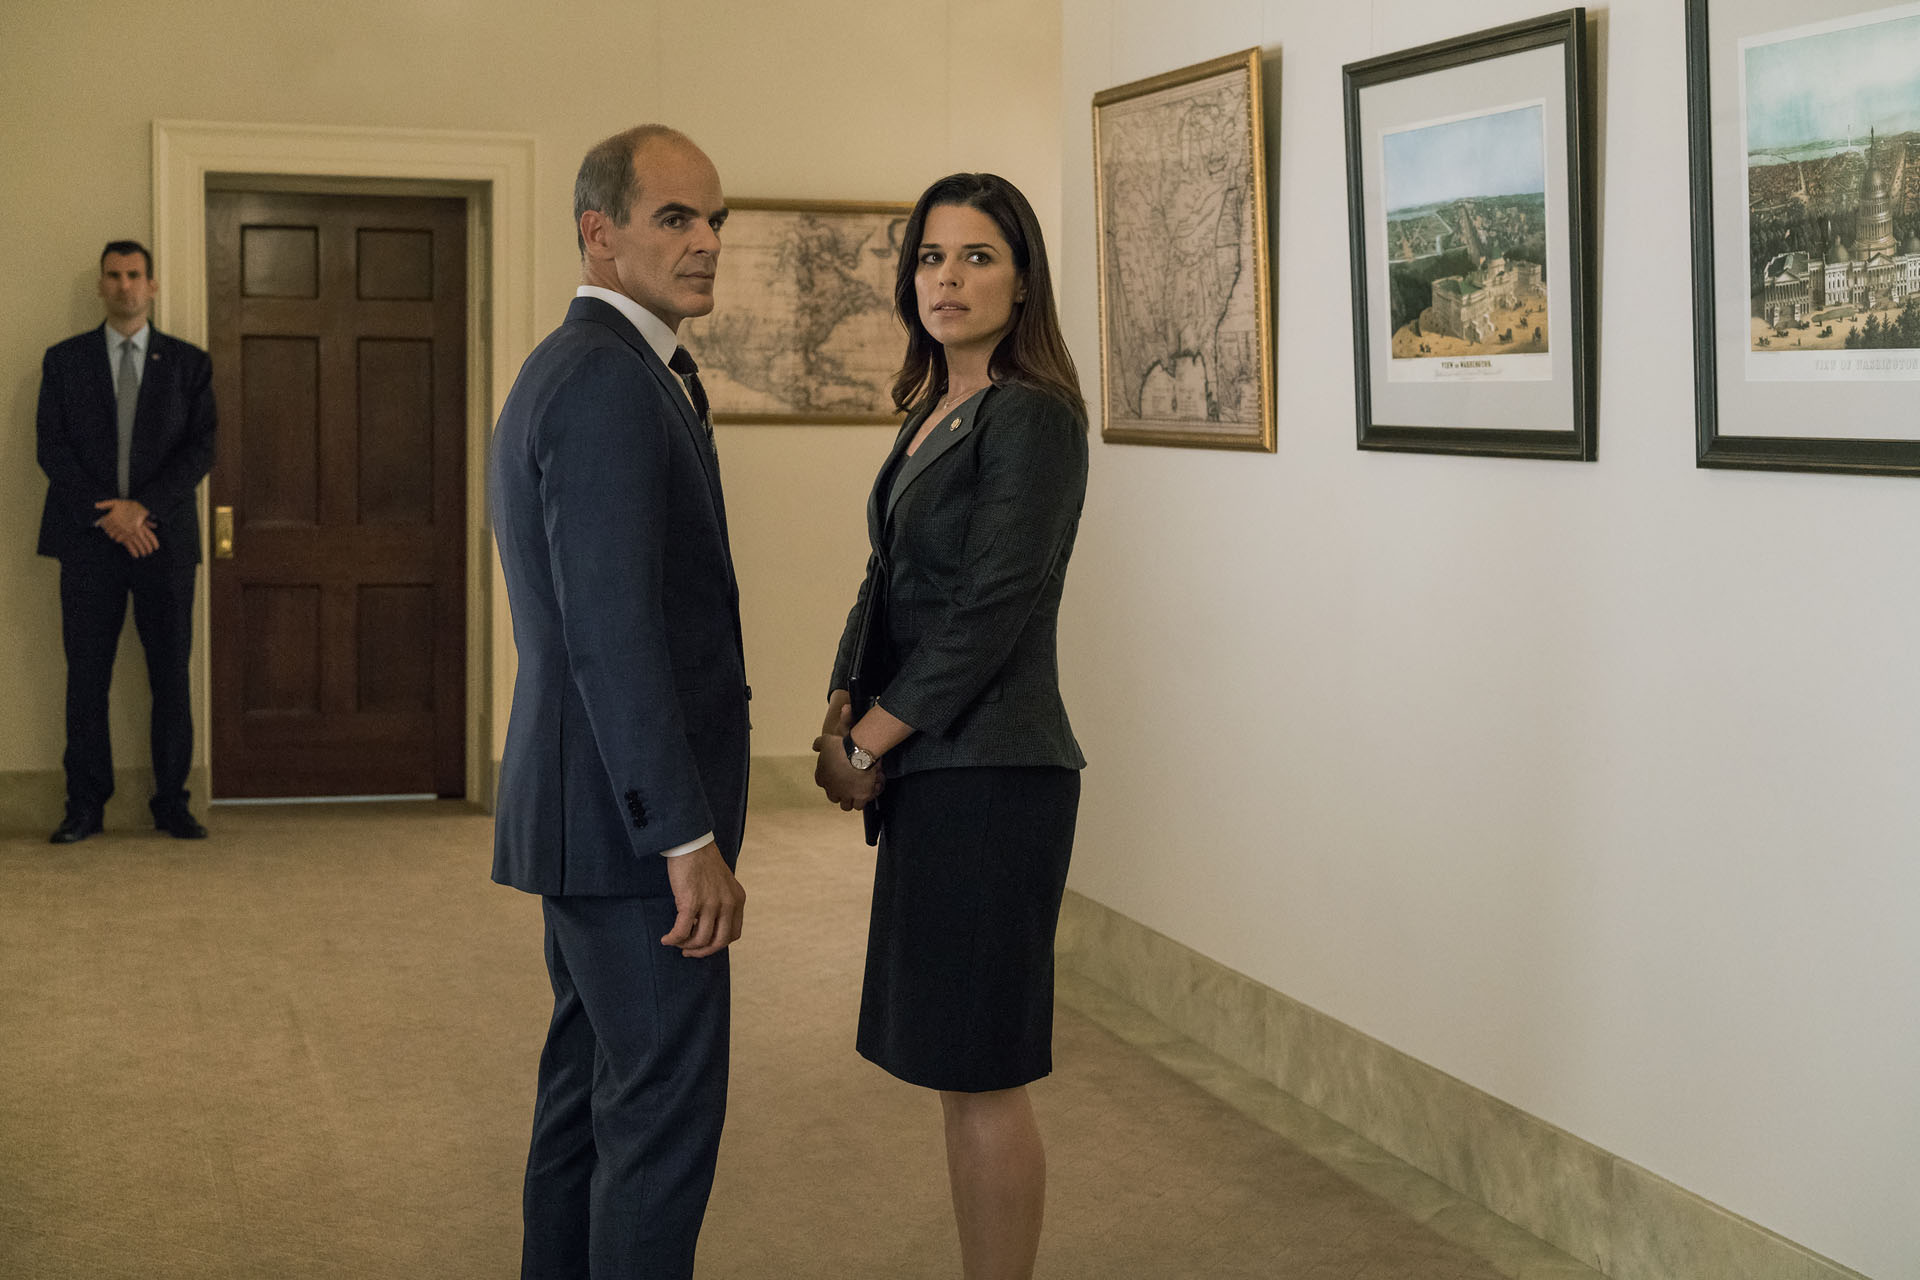 Doug Stamper con Leann Harvey (House of Cards)